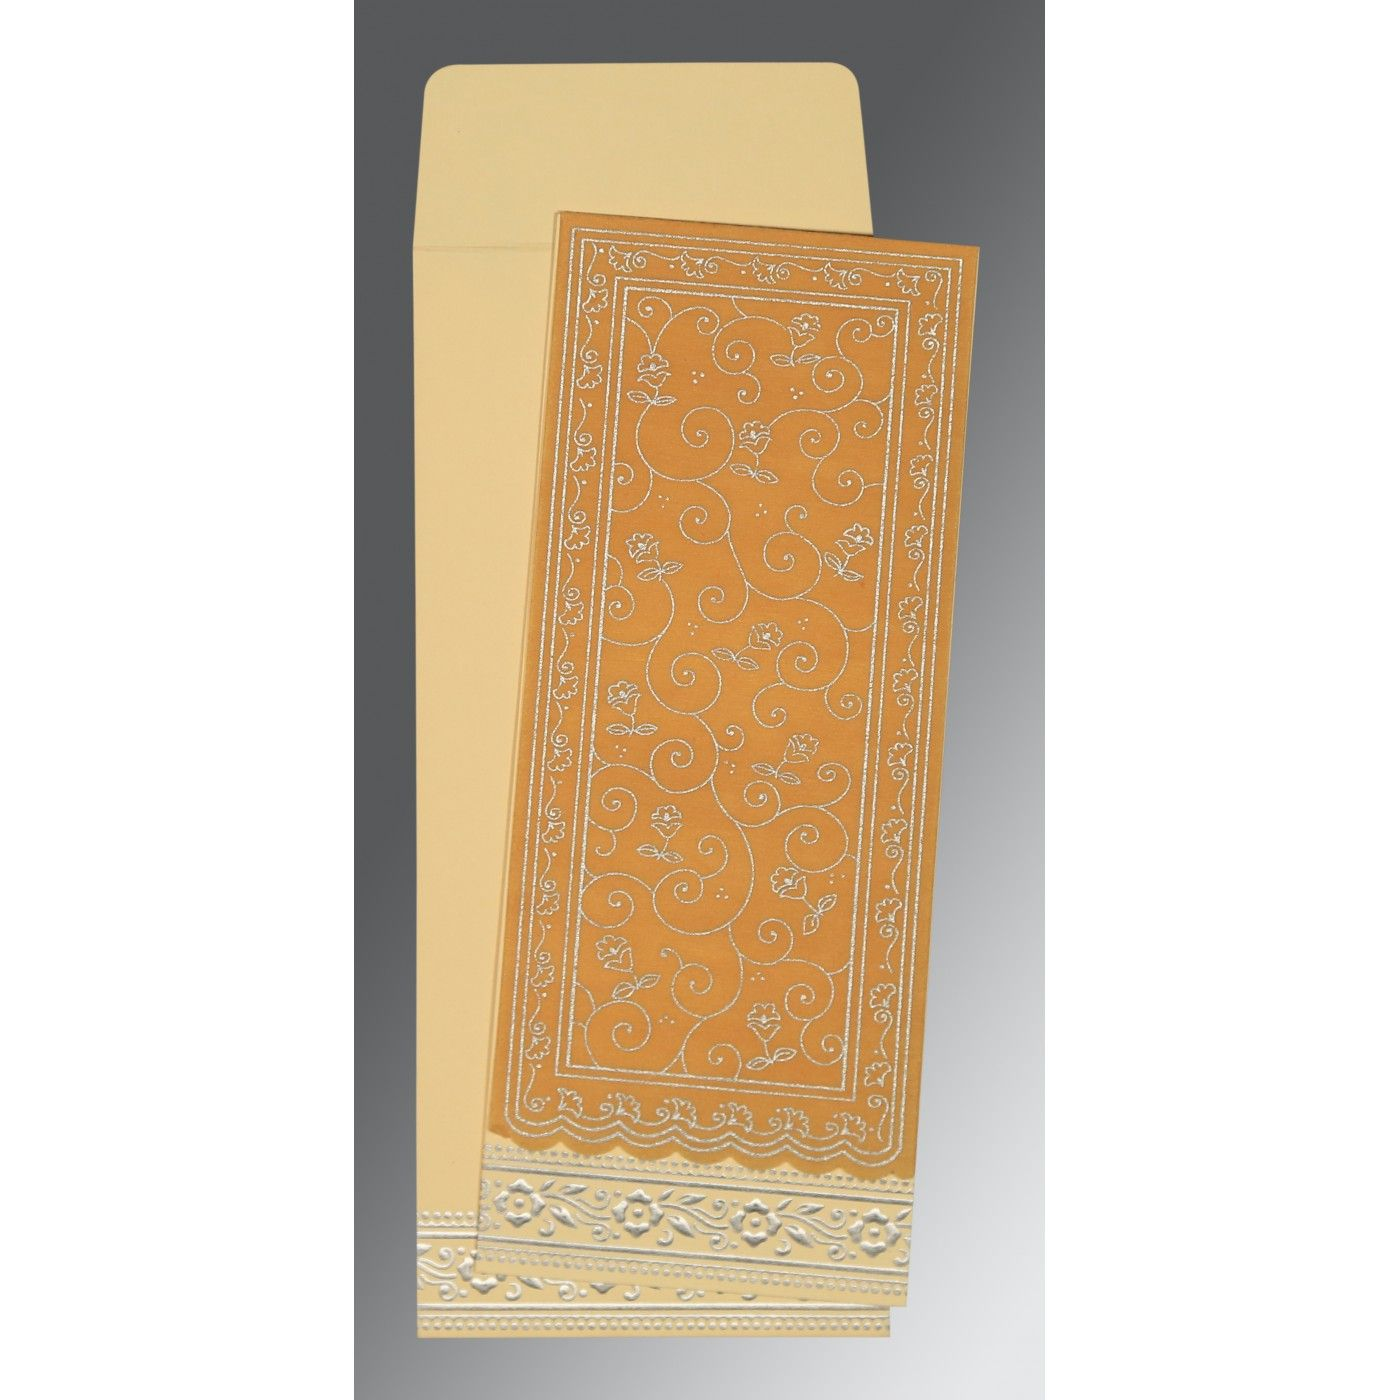 YELLOW WOOLY SCREEN PRINTED WEDDING INVITATION : CG-8220O - IndianWeddingCards